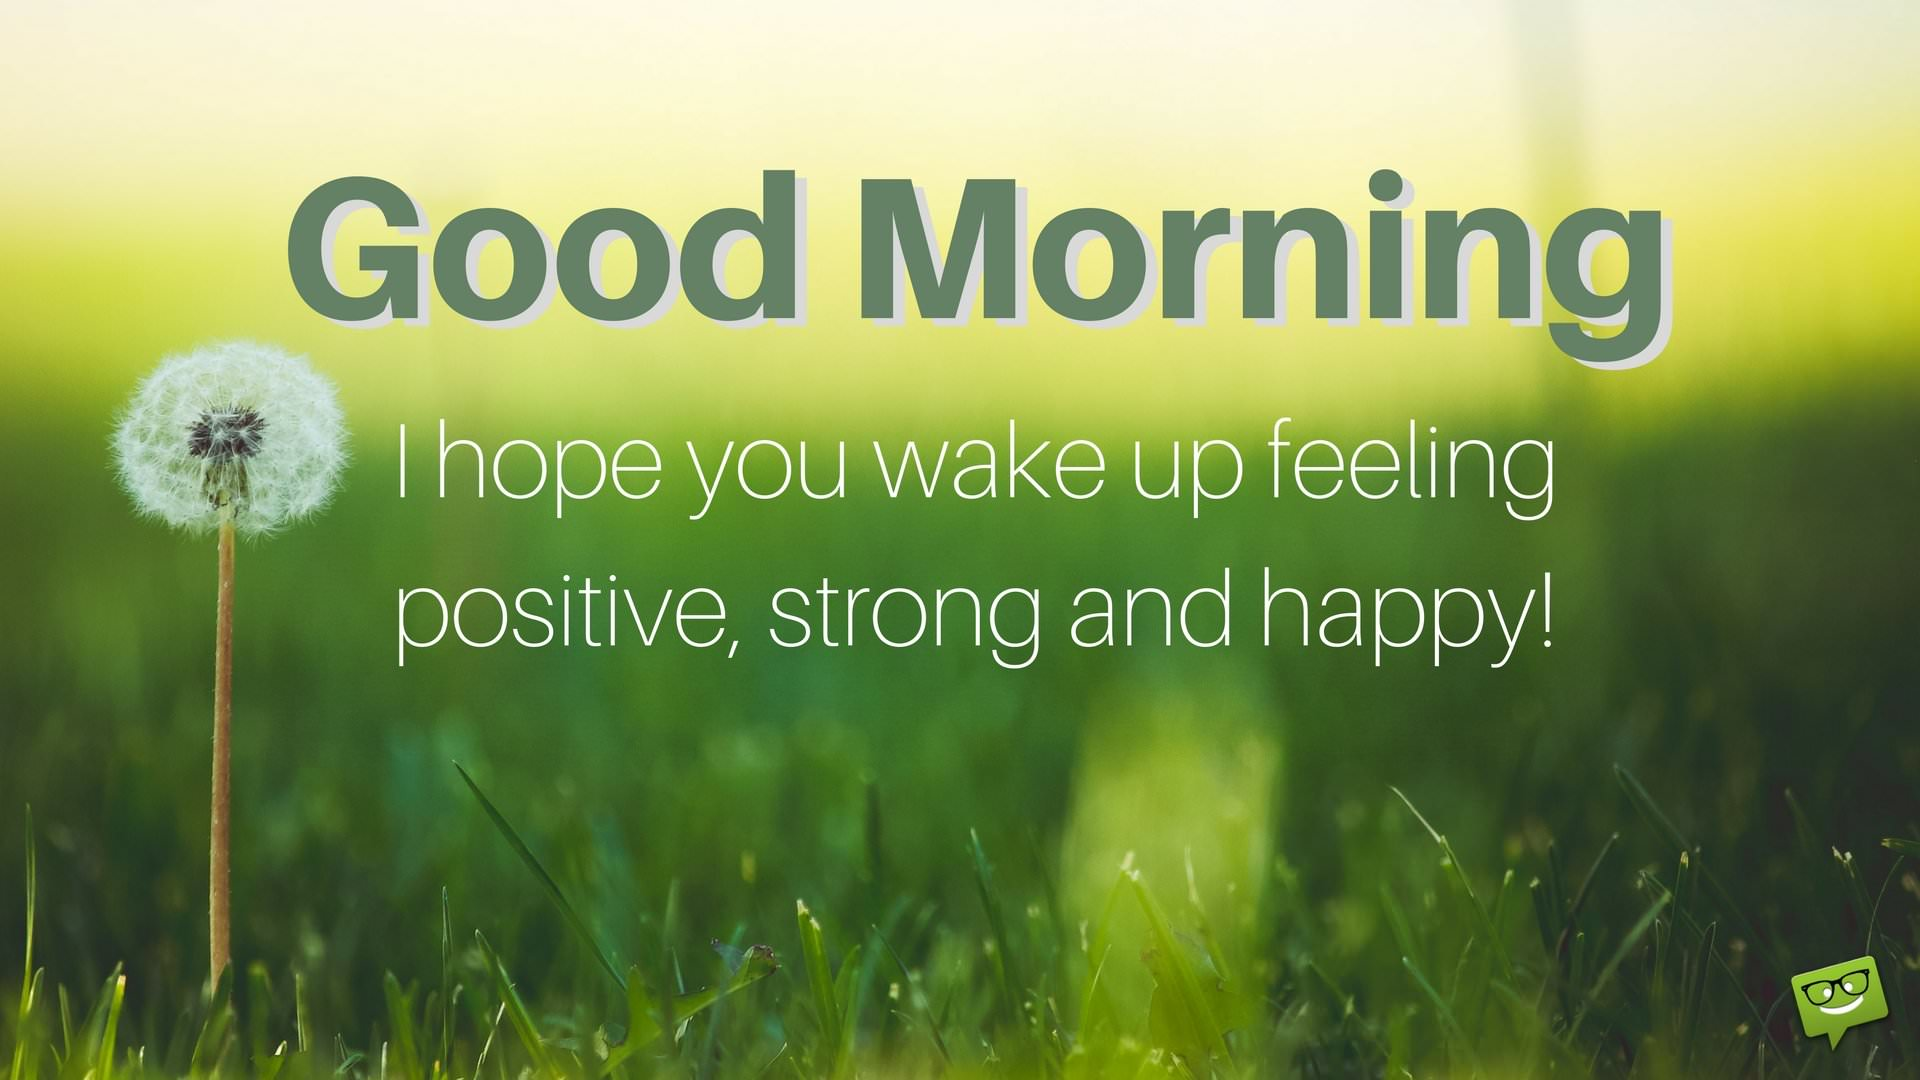 Good Morning I Hope You Wake Up Feeling Positive Strong And Happy